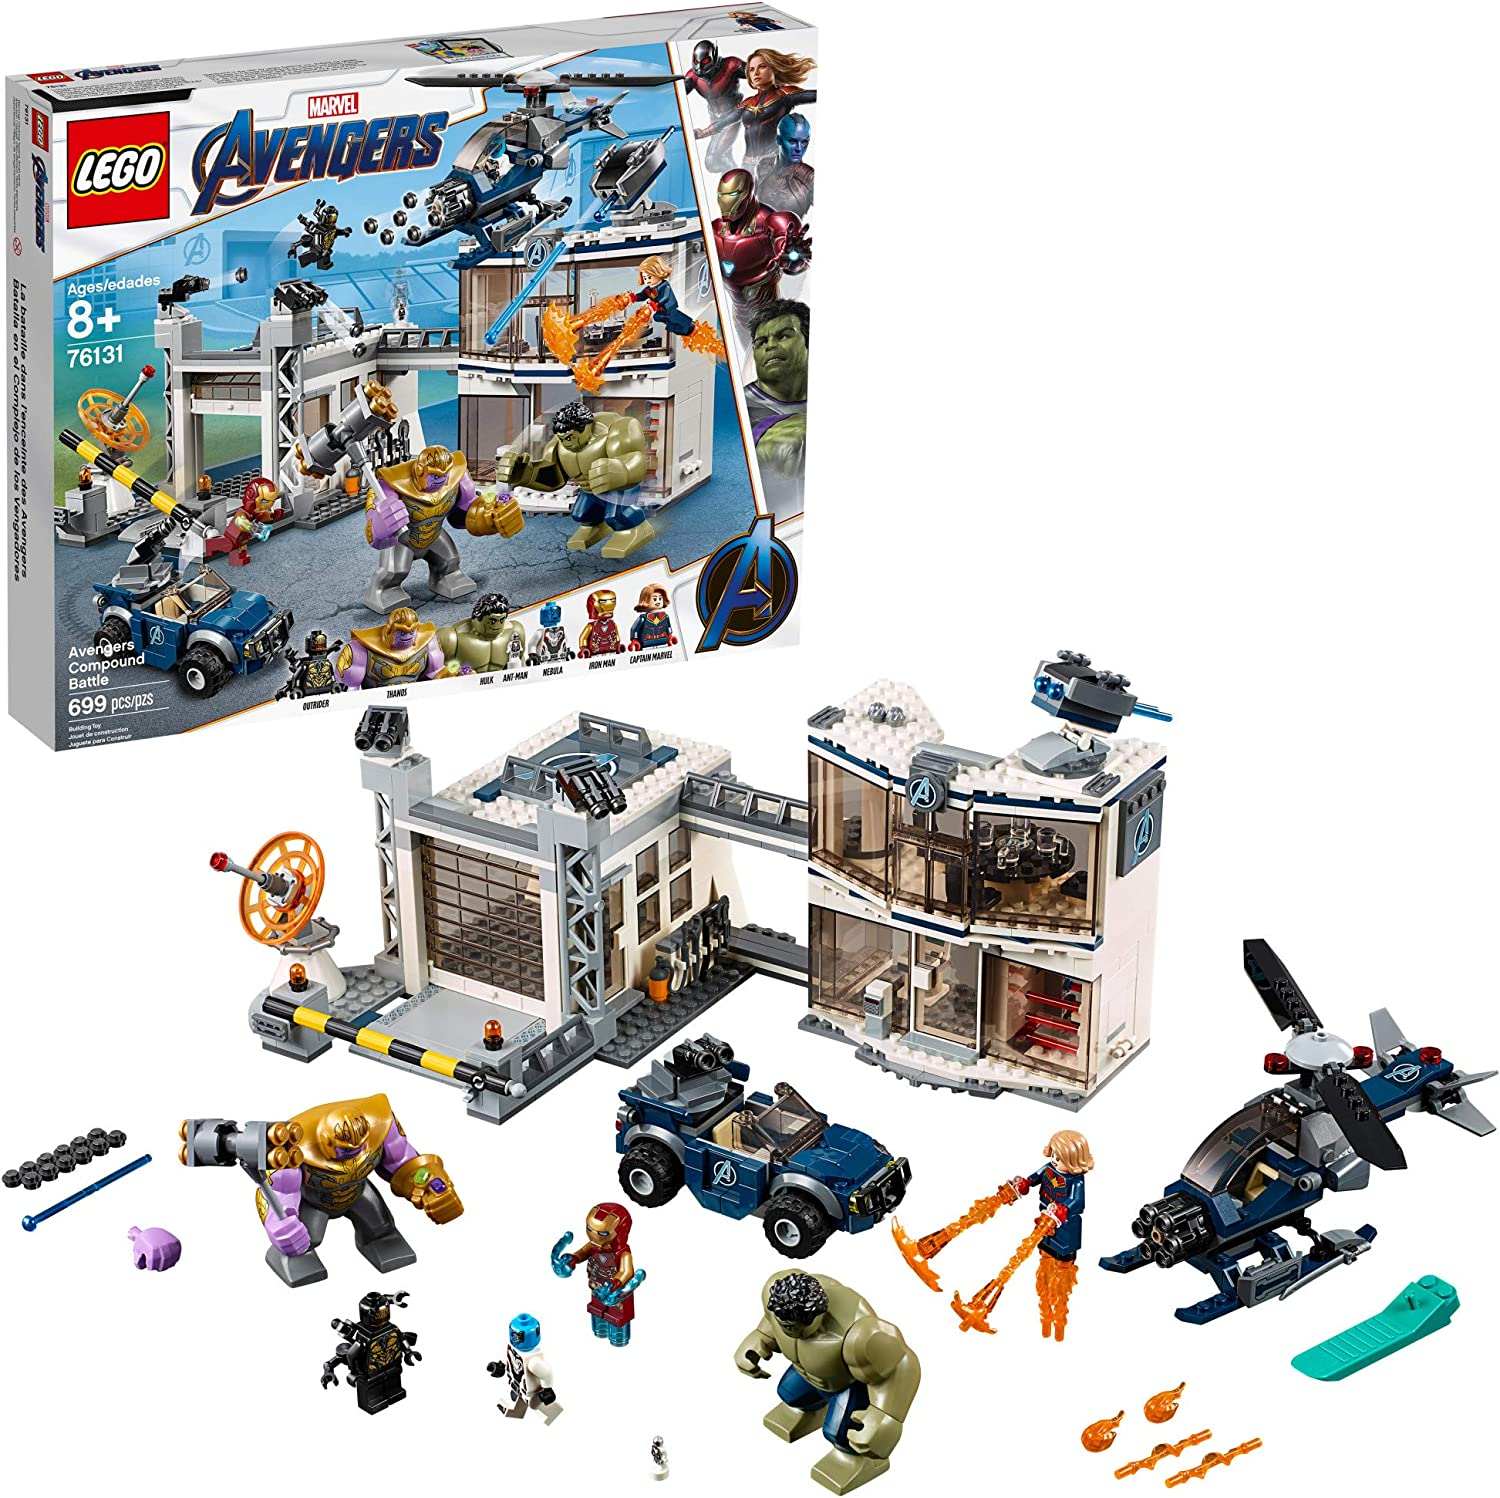 Amazon Com Lego Marvel Avengers Compound Battle 76131 Building Set Includes Toy Car Helicopter And Popular Avengers Characters Iron Man Thanos And More 699 Pieces Toys Games